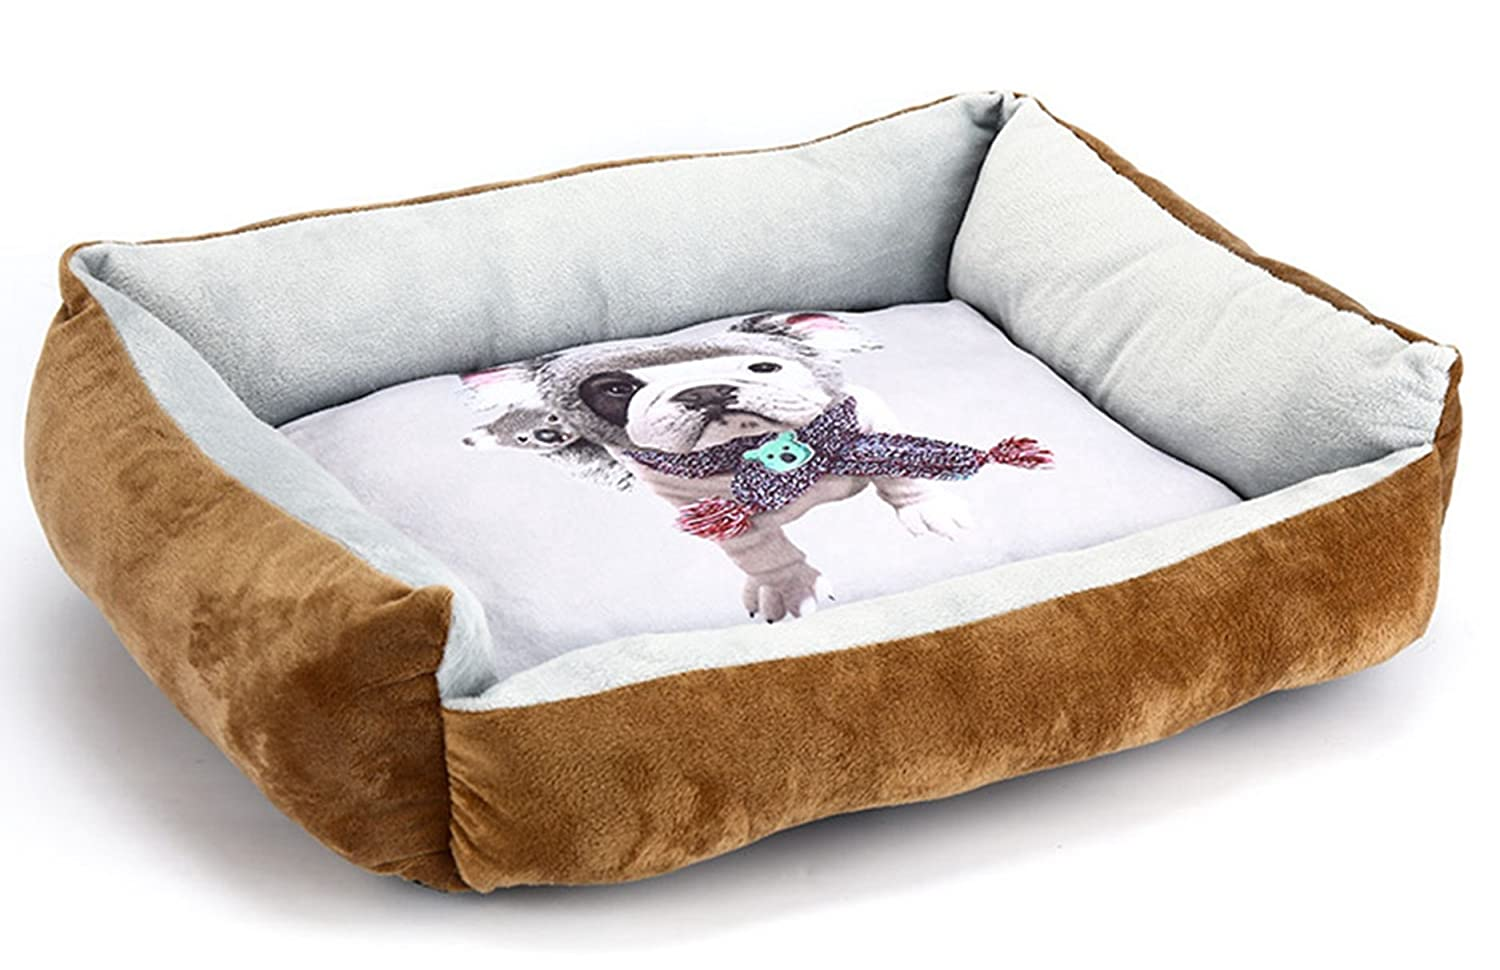 Brown S Brown S Washable Dog Bed Mat Pet Cat Sofa Cotton Puppy Kitten Kennels Warm Solid Pet Products for Small Large Dogs Cat